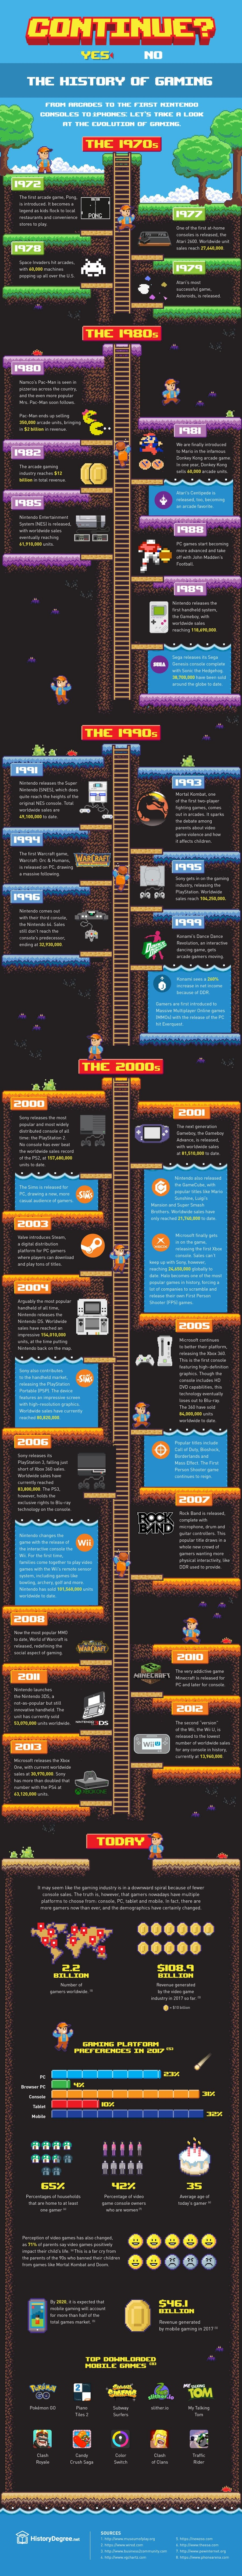 The History of Gaming